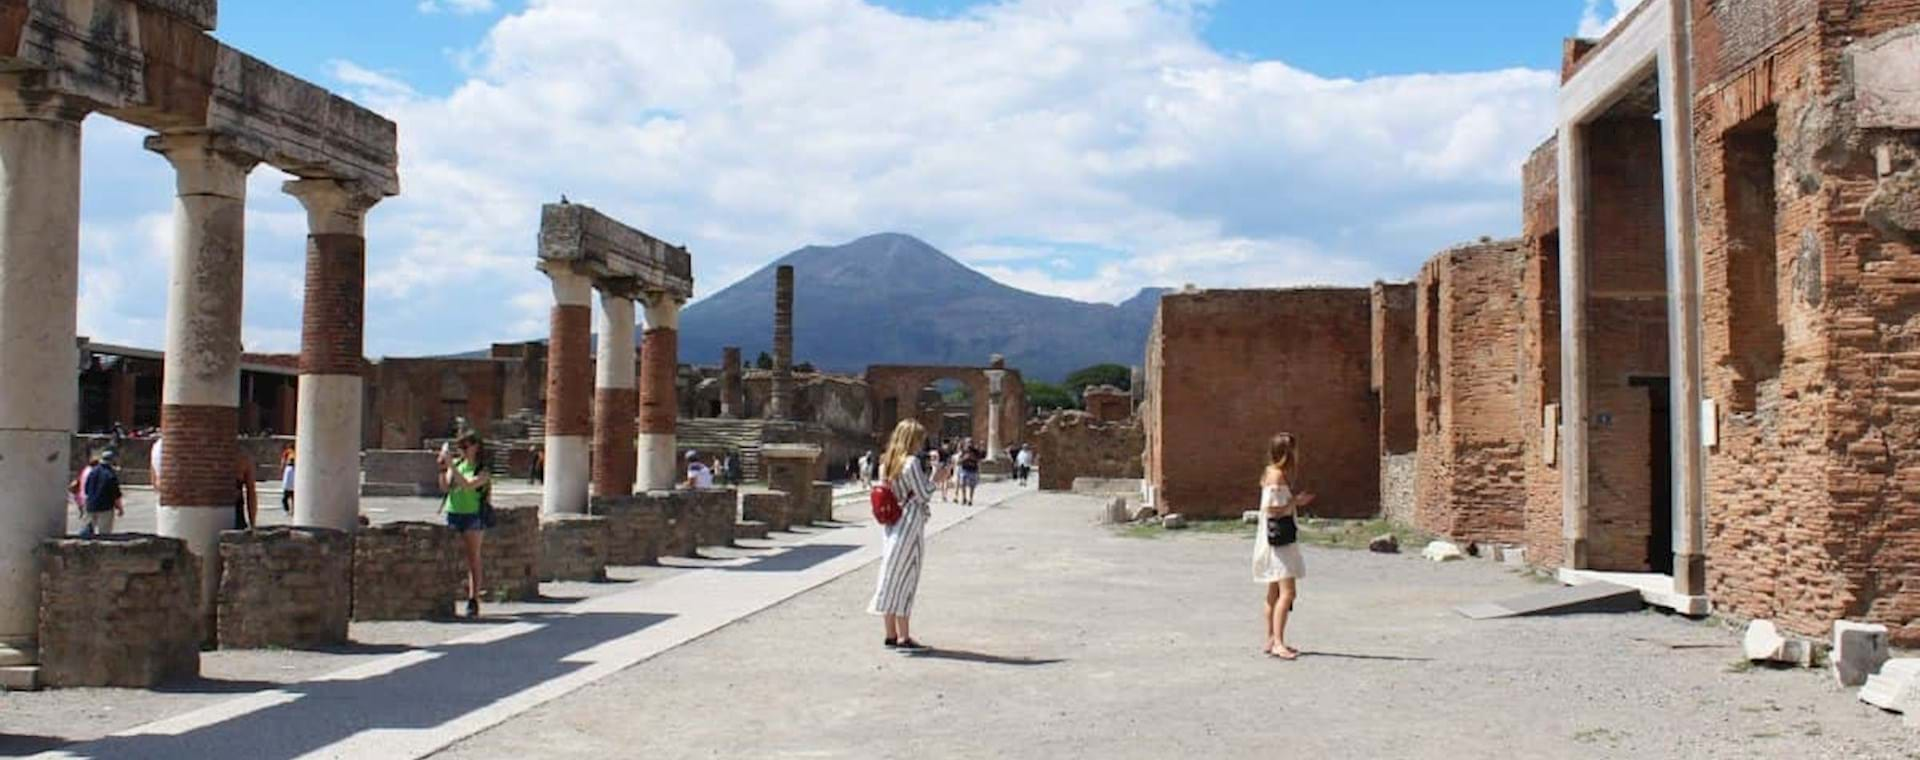 beautiful view of the ruins of Pompeii